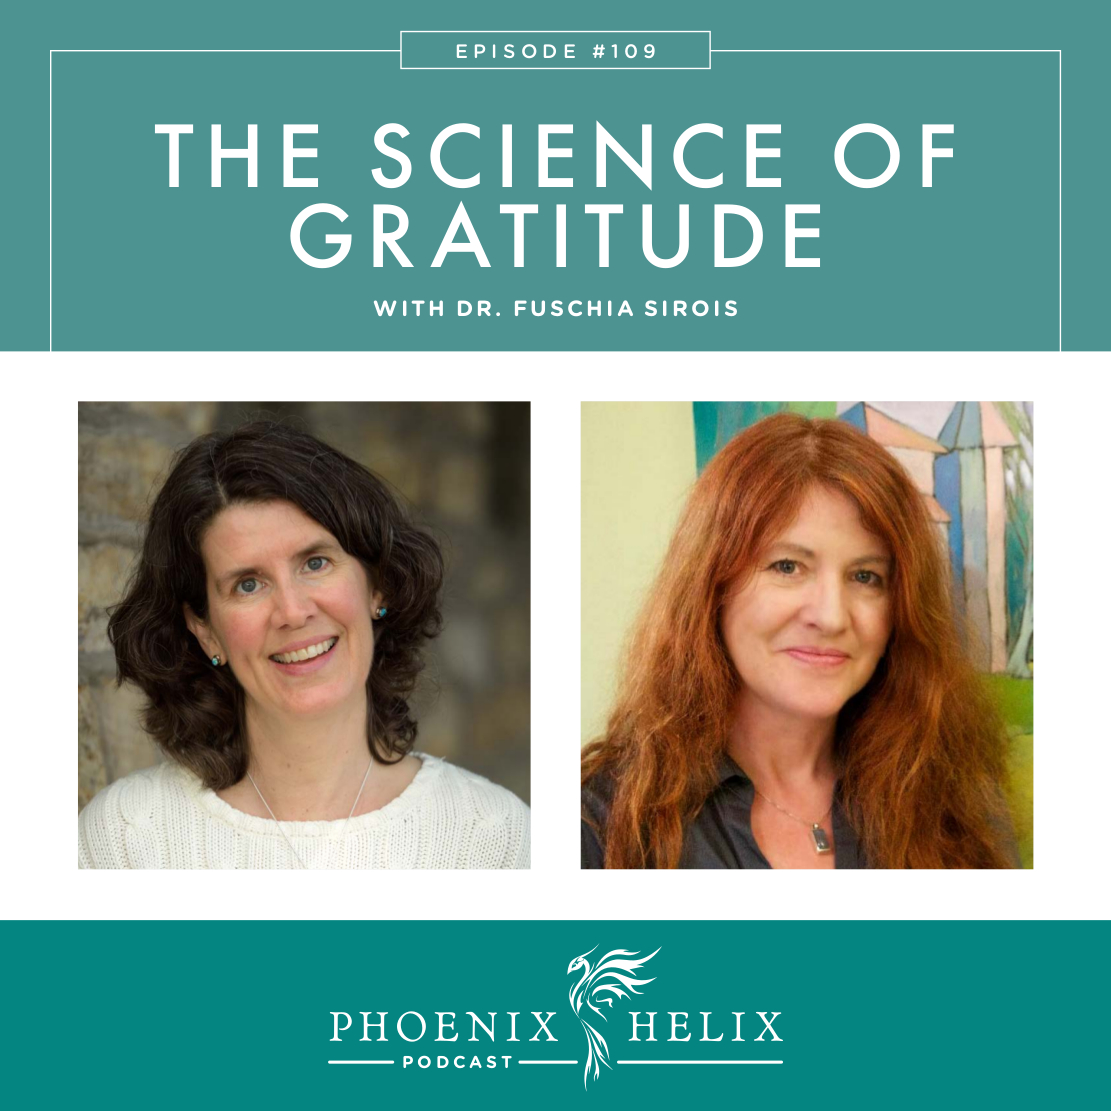 The Science of Gratitude with Dr. Fuschia Sirois | Phoenix Helix Podcast